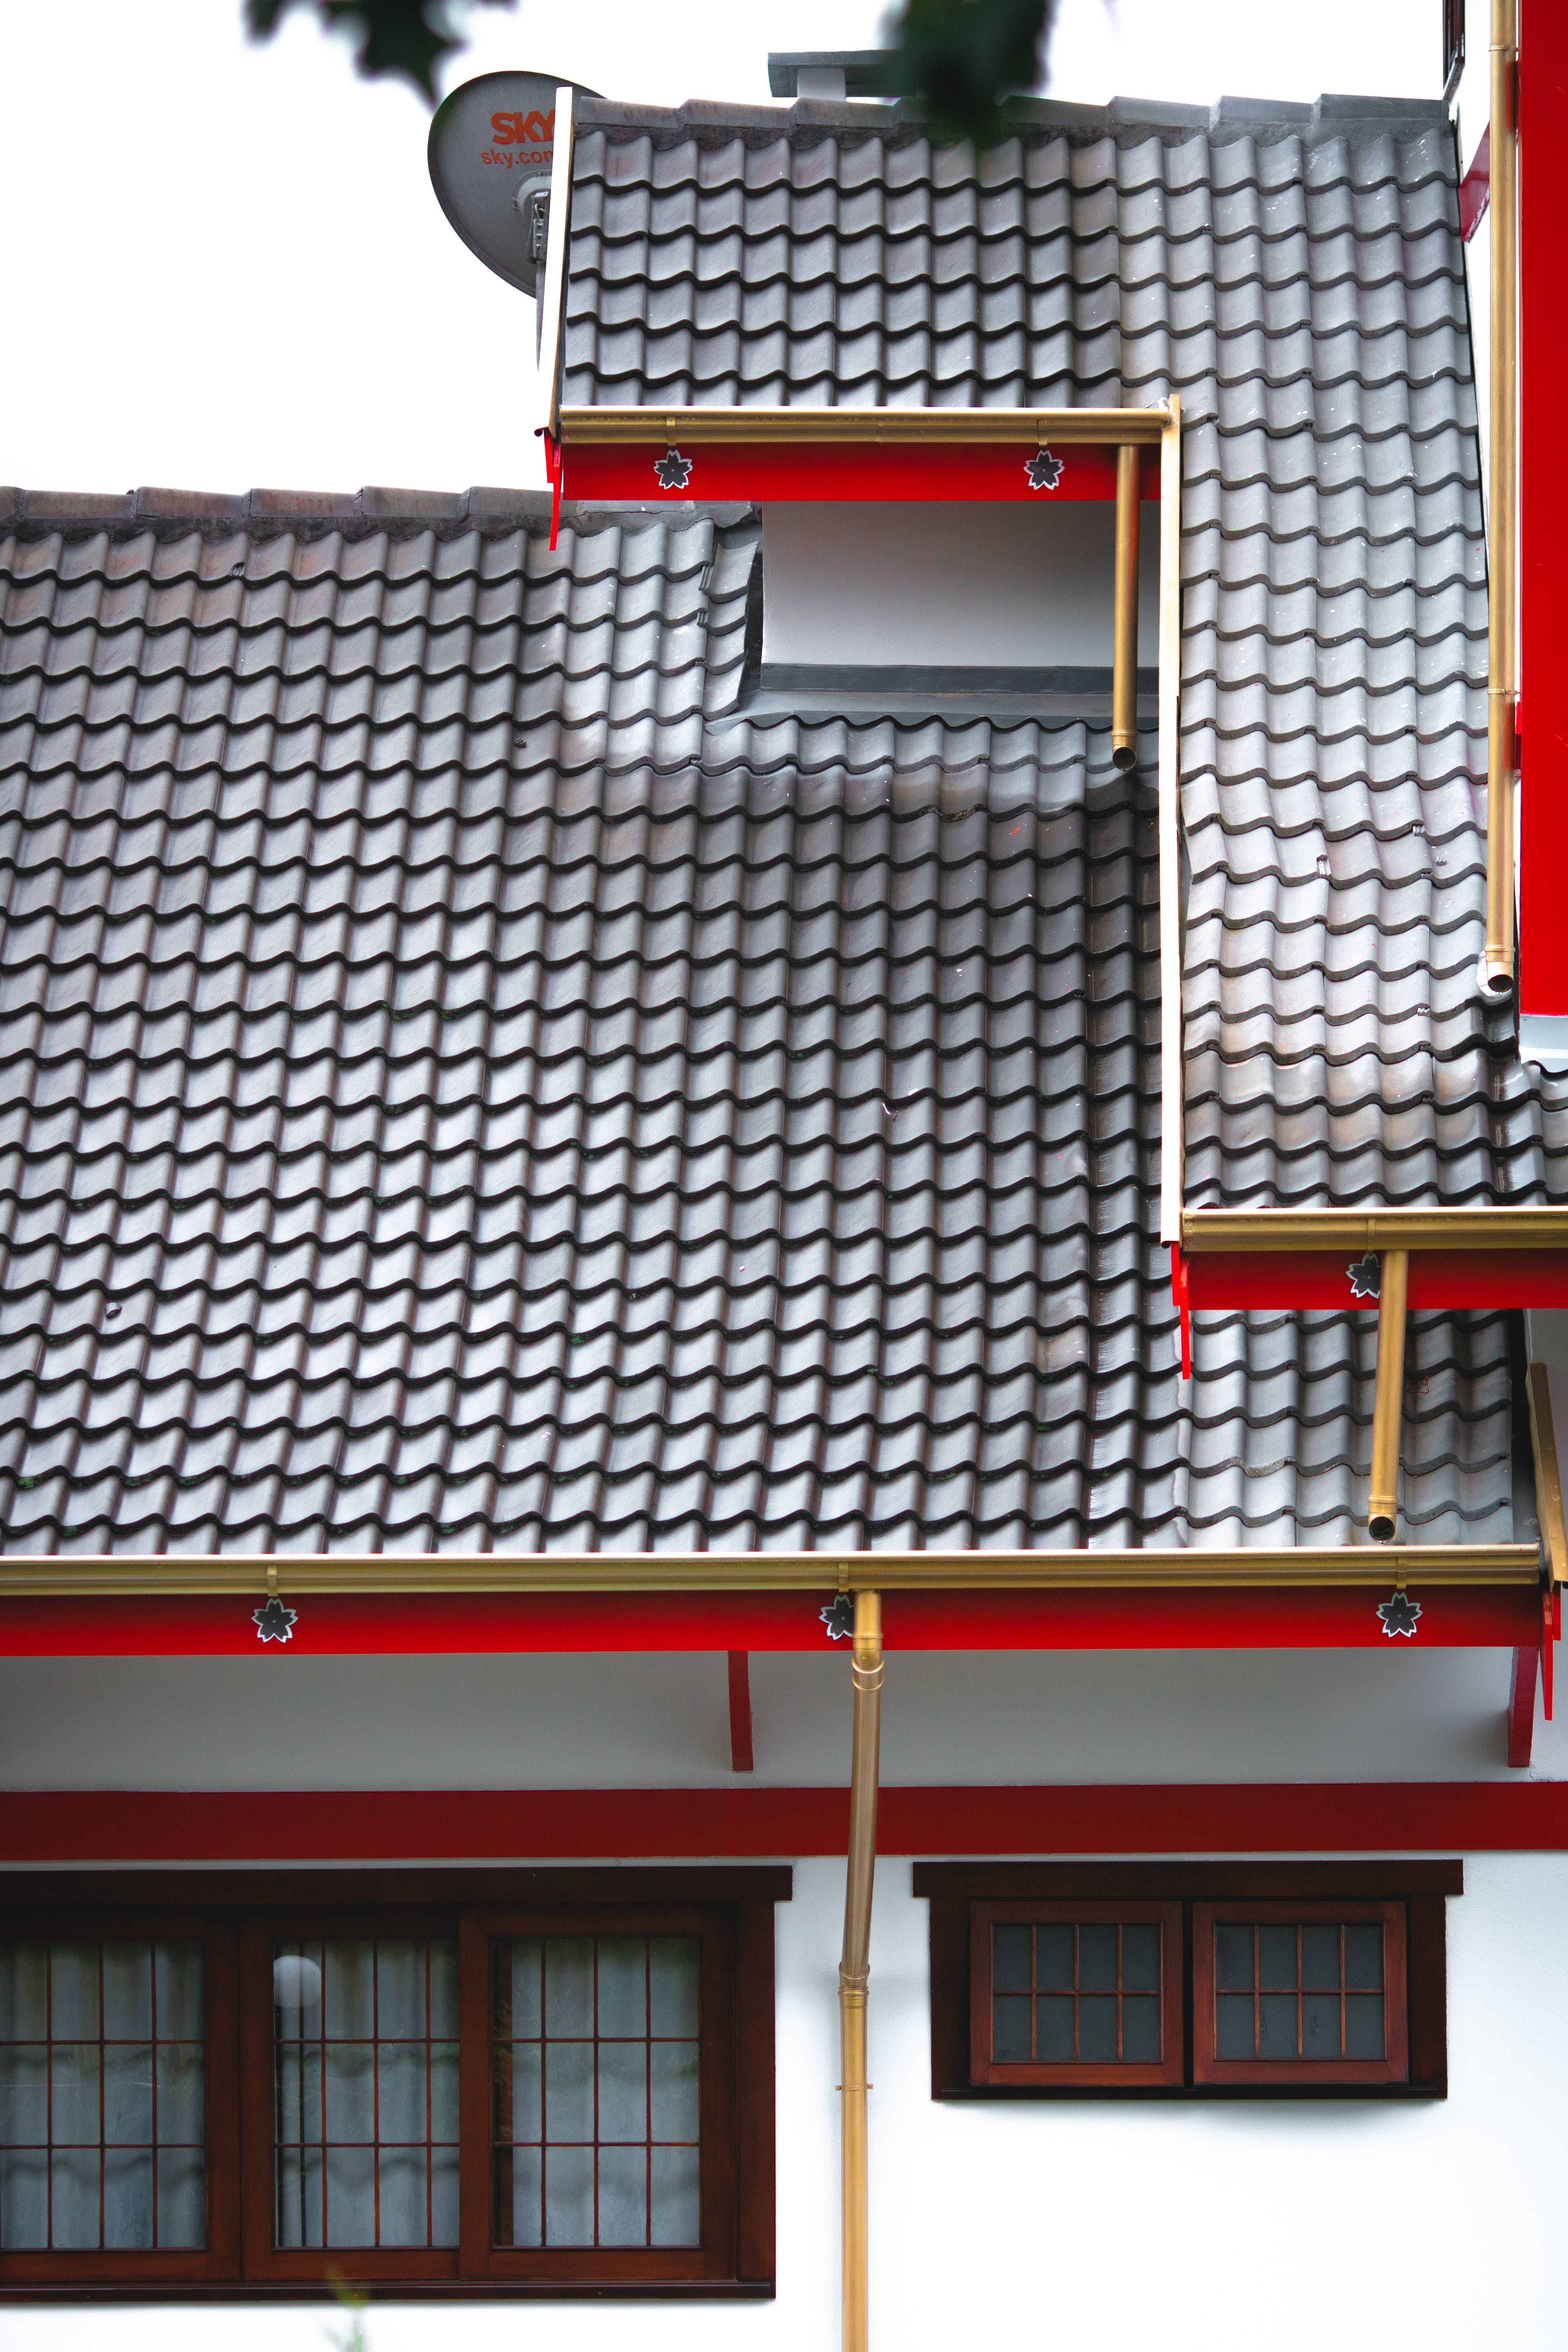 Why not learn more about  Roofing?